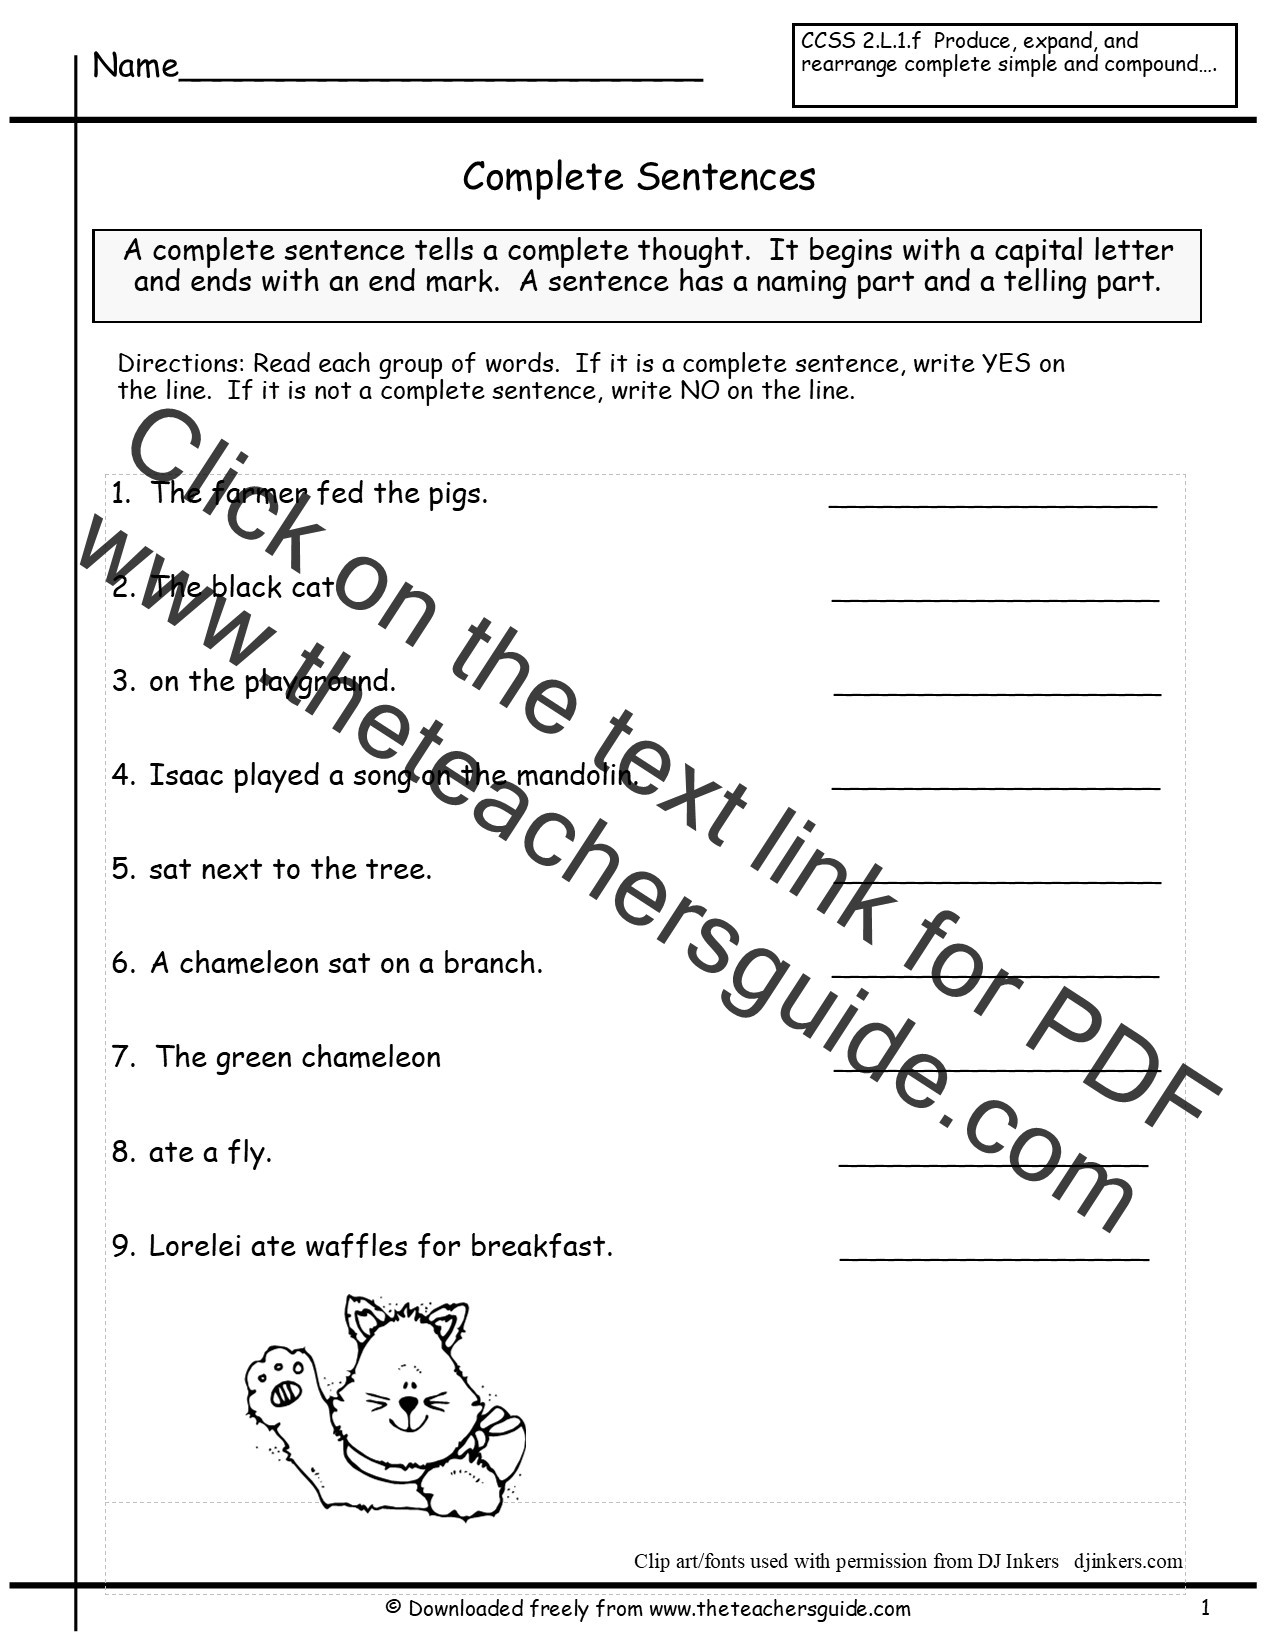 Writing Complete Sentences Worksheets Free Writing and Language Arts From the Teacher S Guide